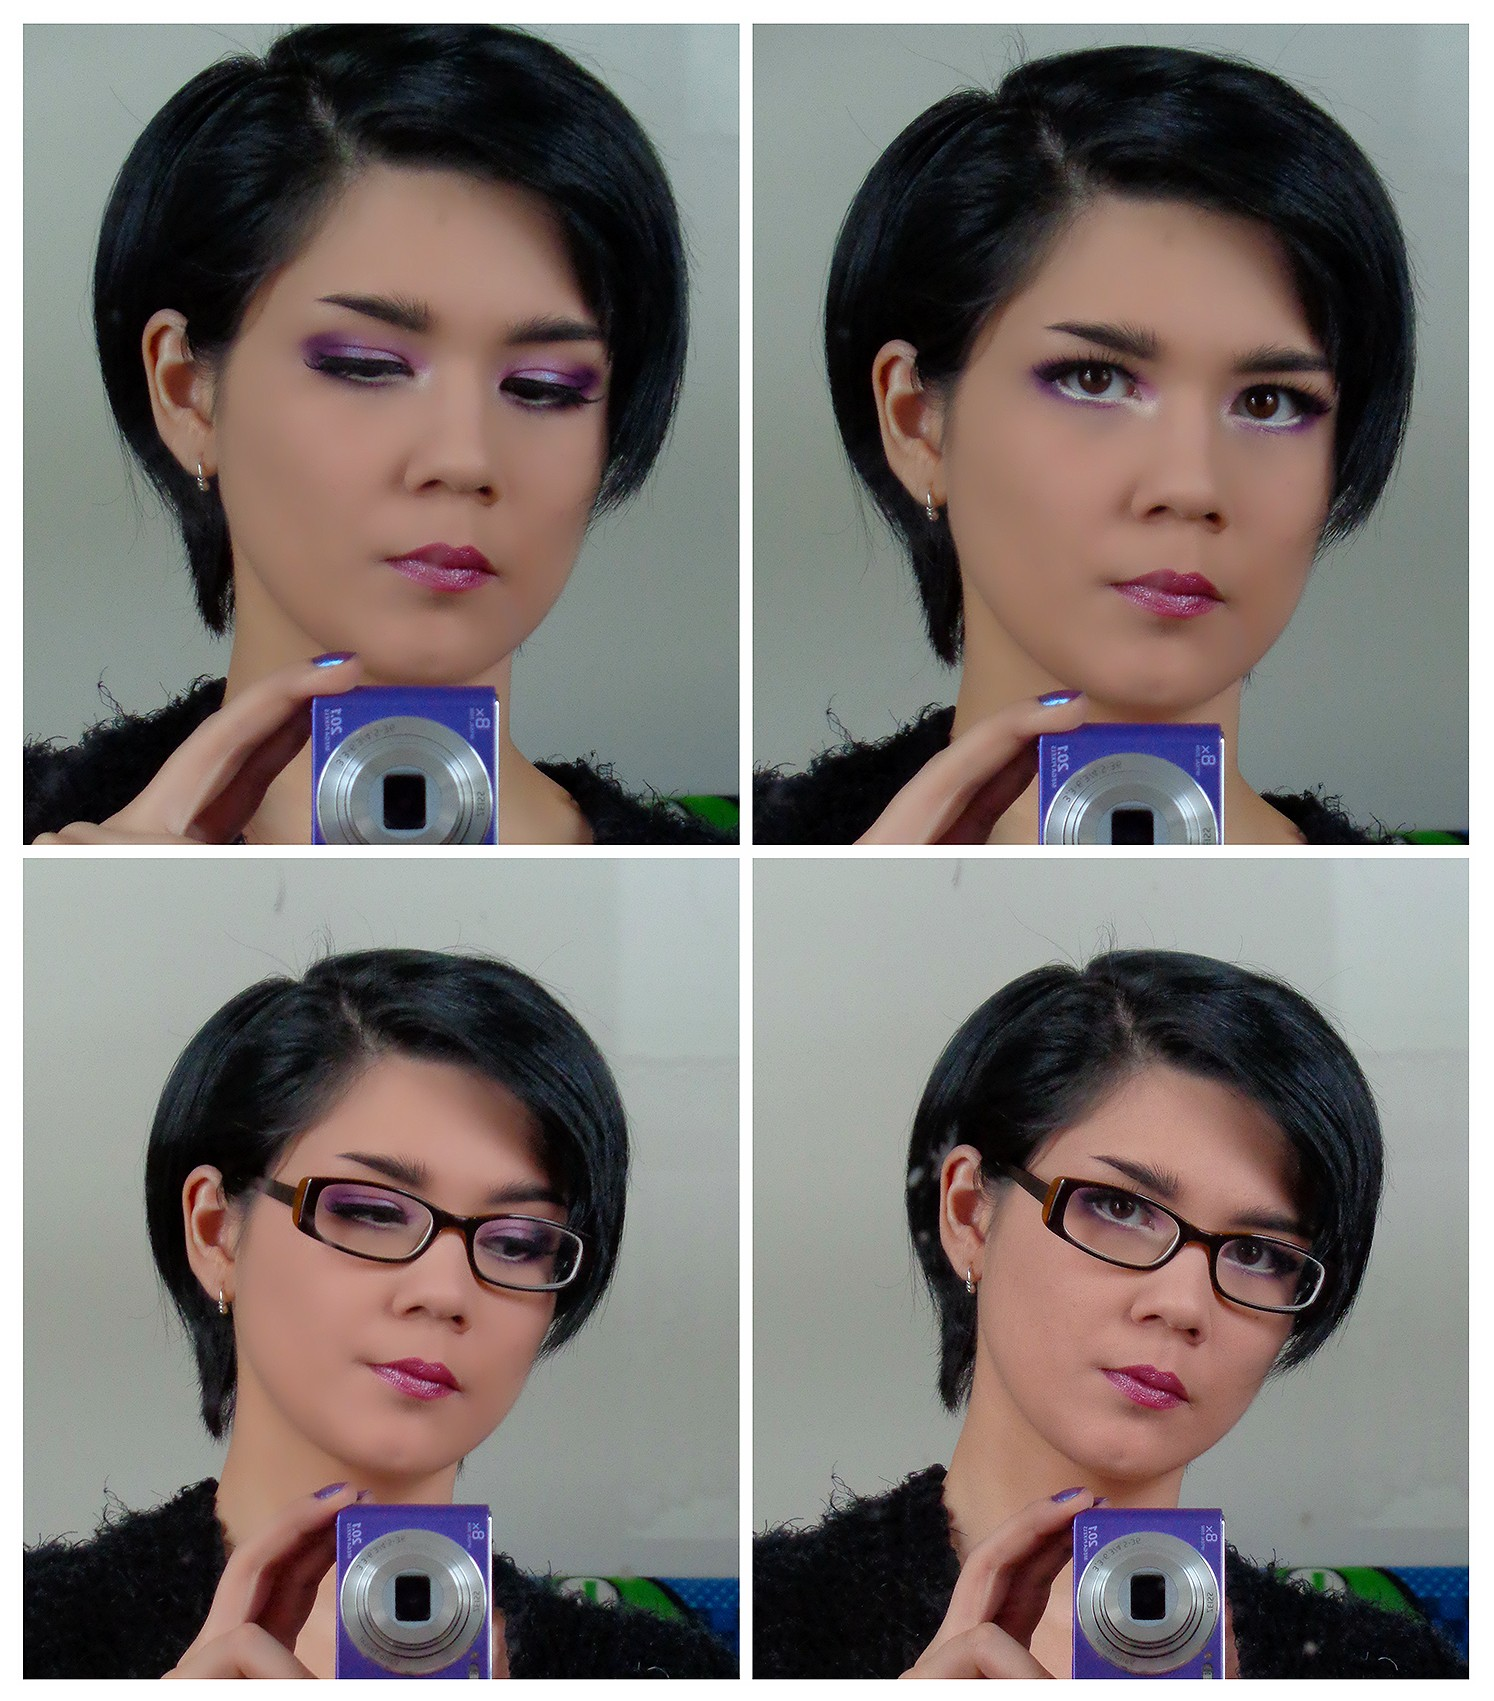 make-up-differences.jpg